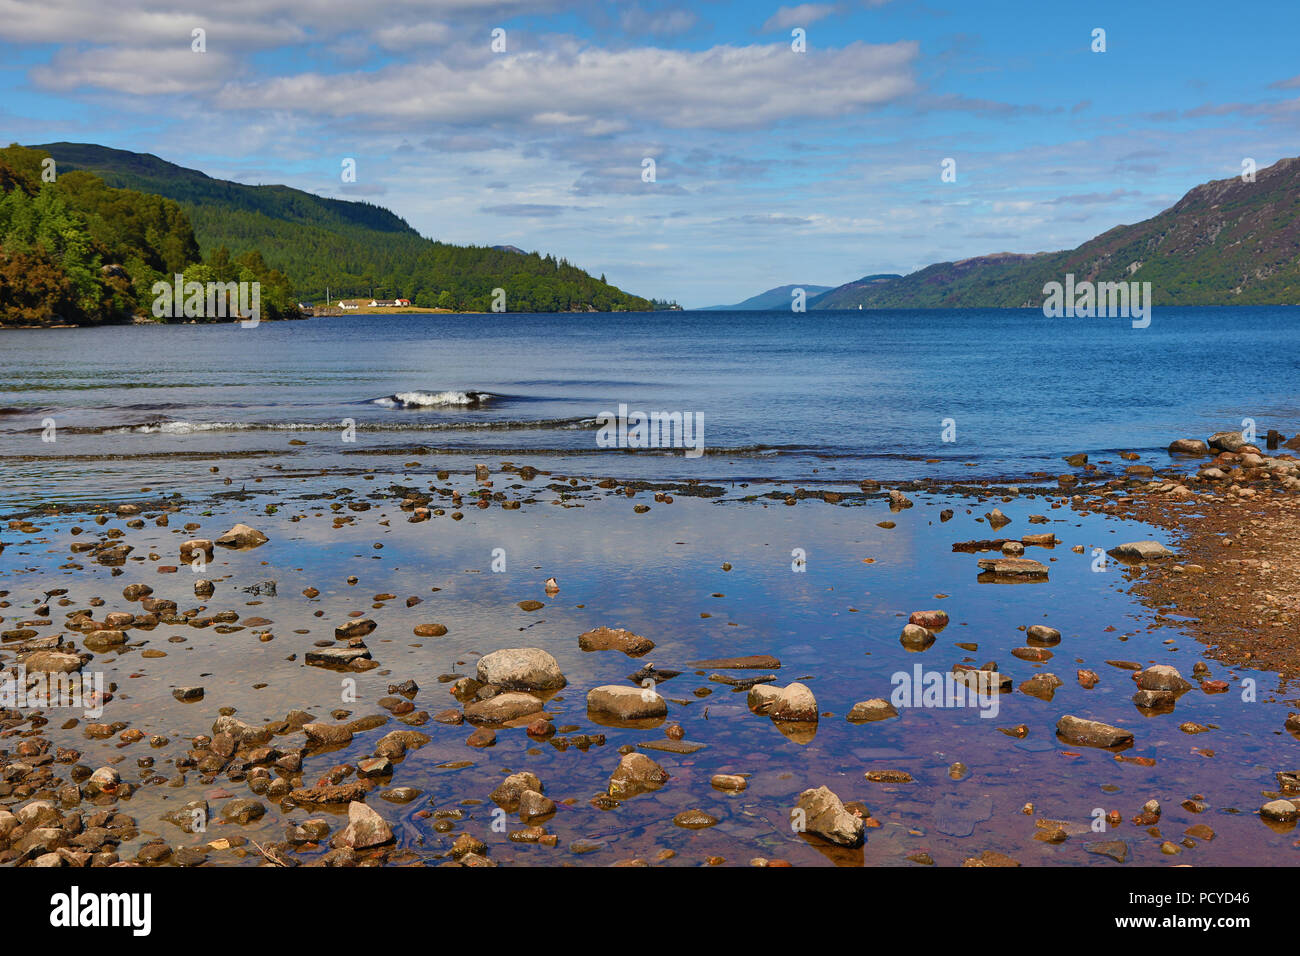 Loch Ness in the Scottish Highlands from Fort Augustus, Scotland - Stock Image